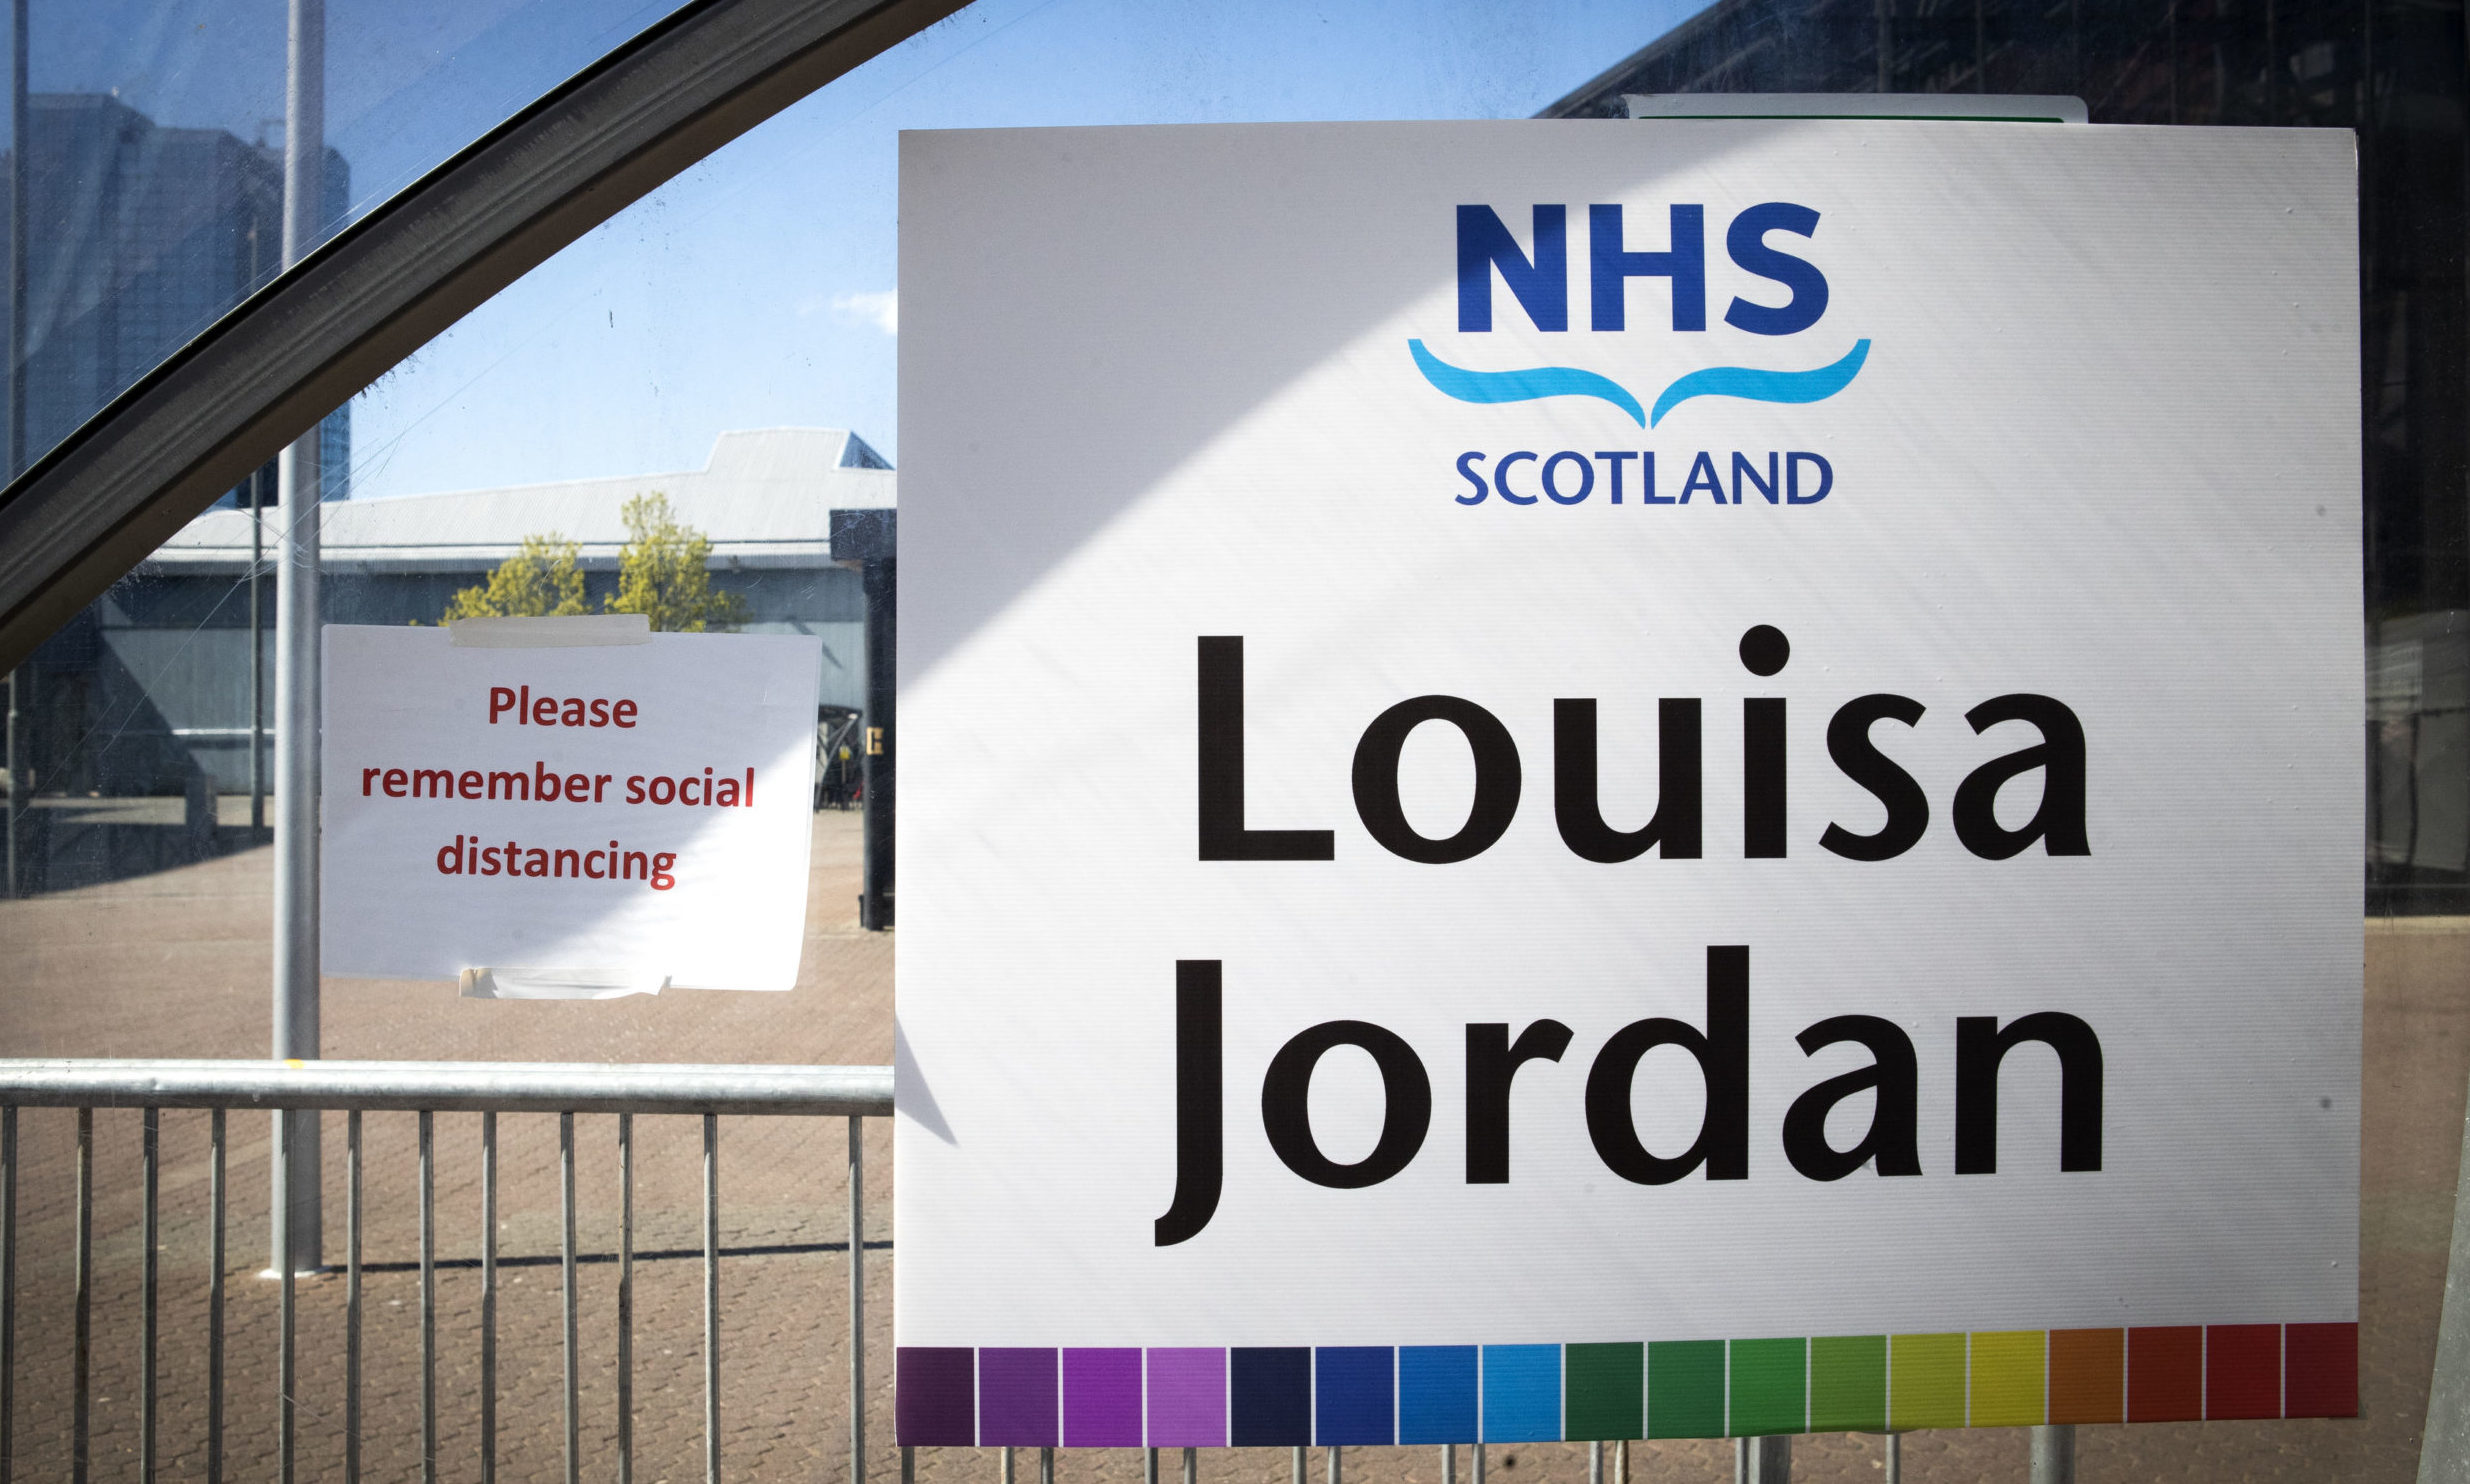 Signs outside the completed NHS Louisa Jordan hospital, built at the SEC Centre in Glasgow, to care for coronavirus patients.